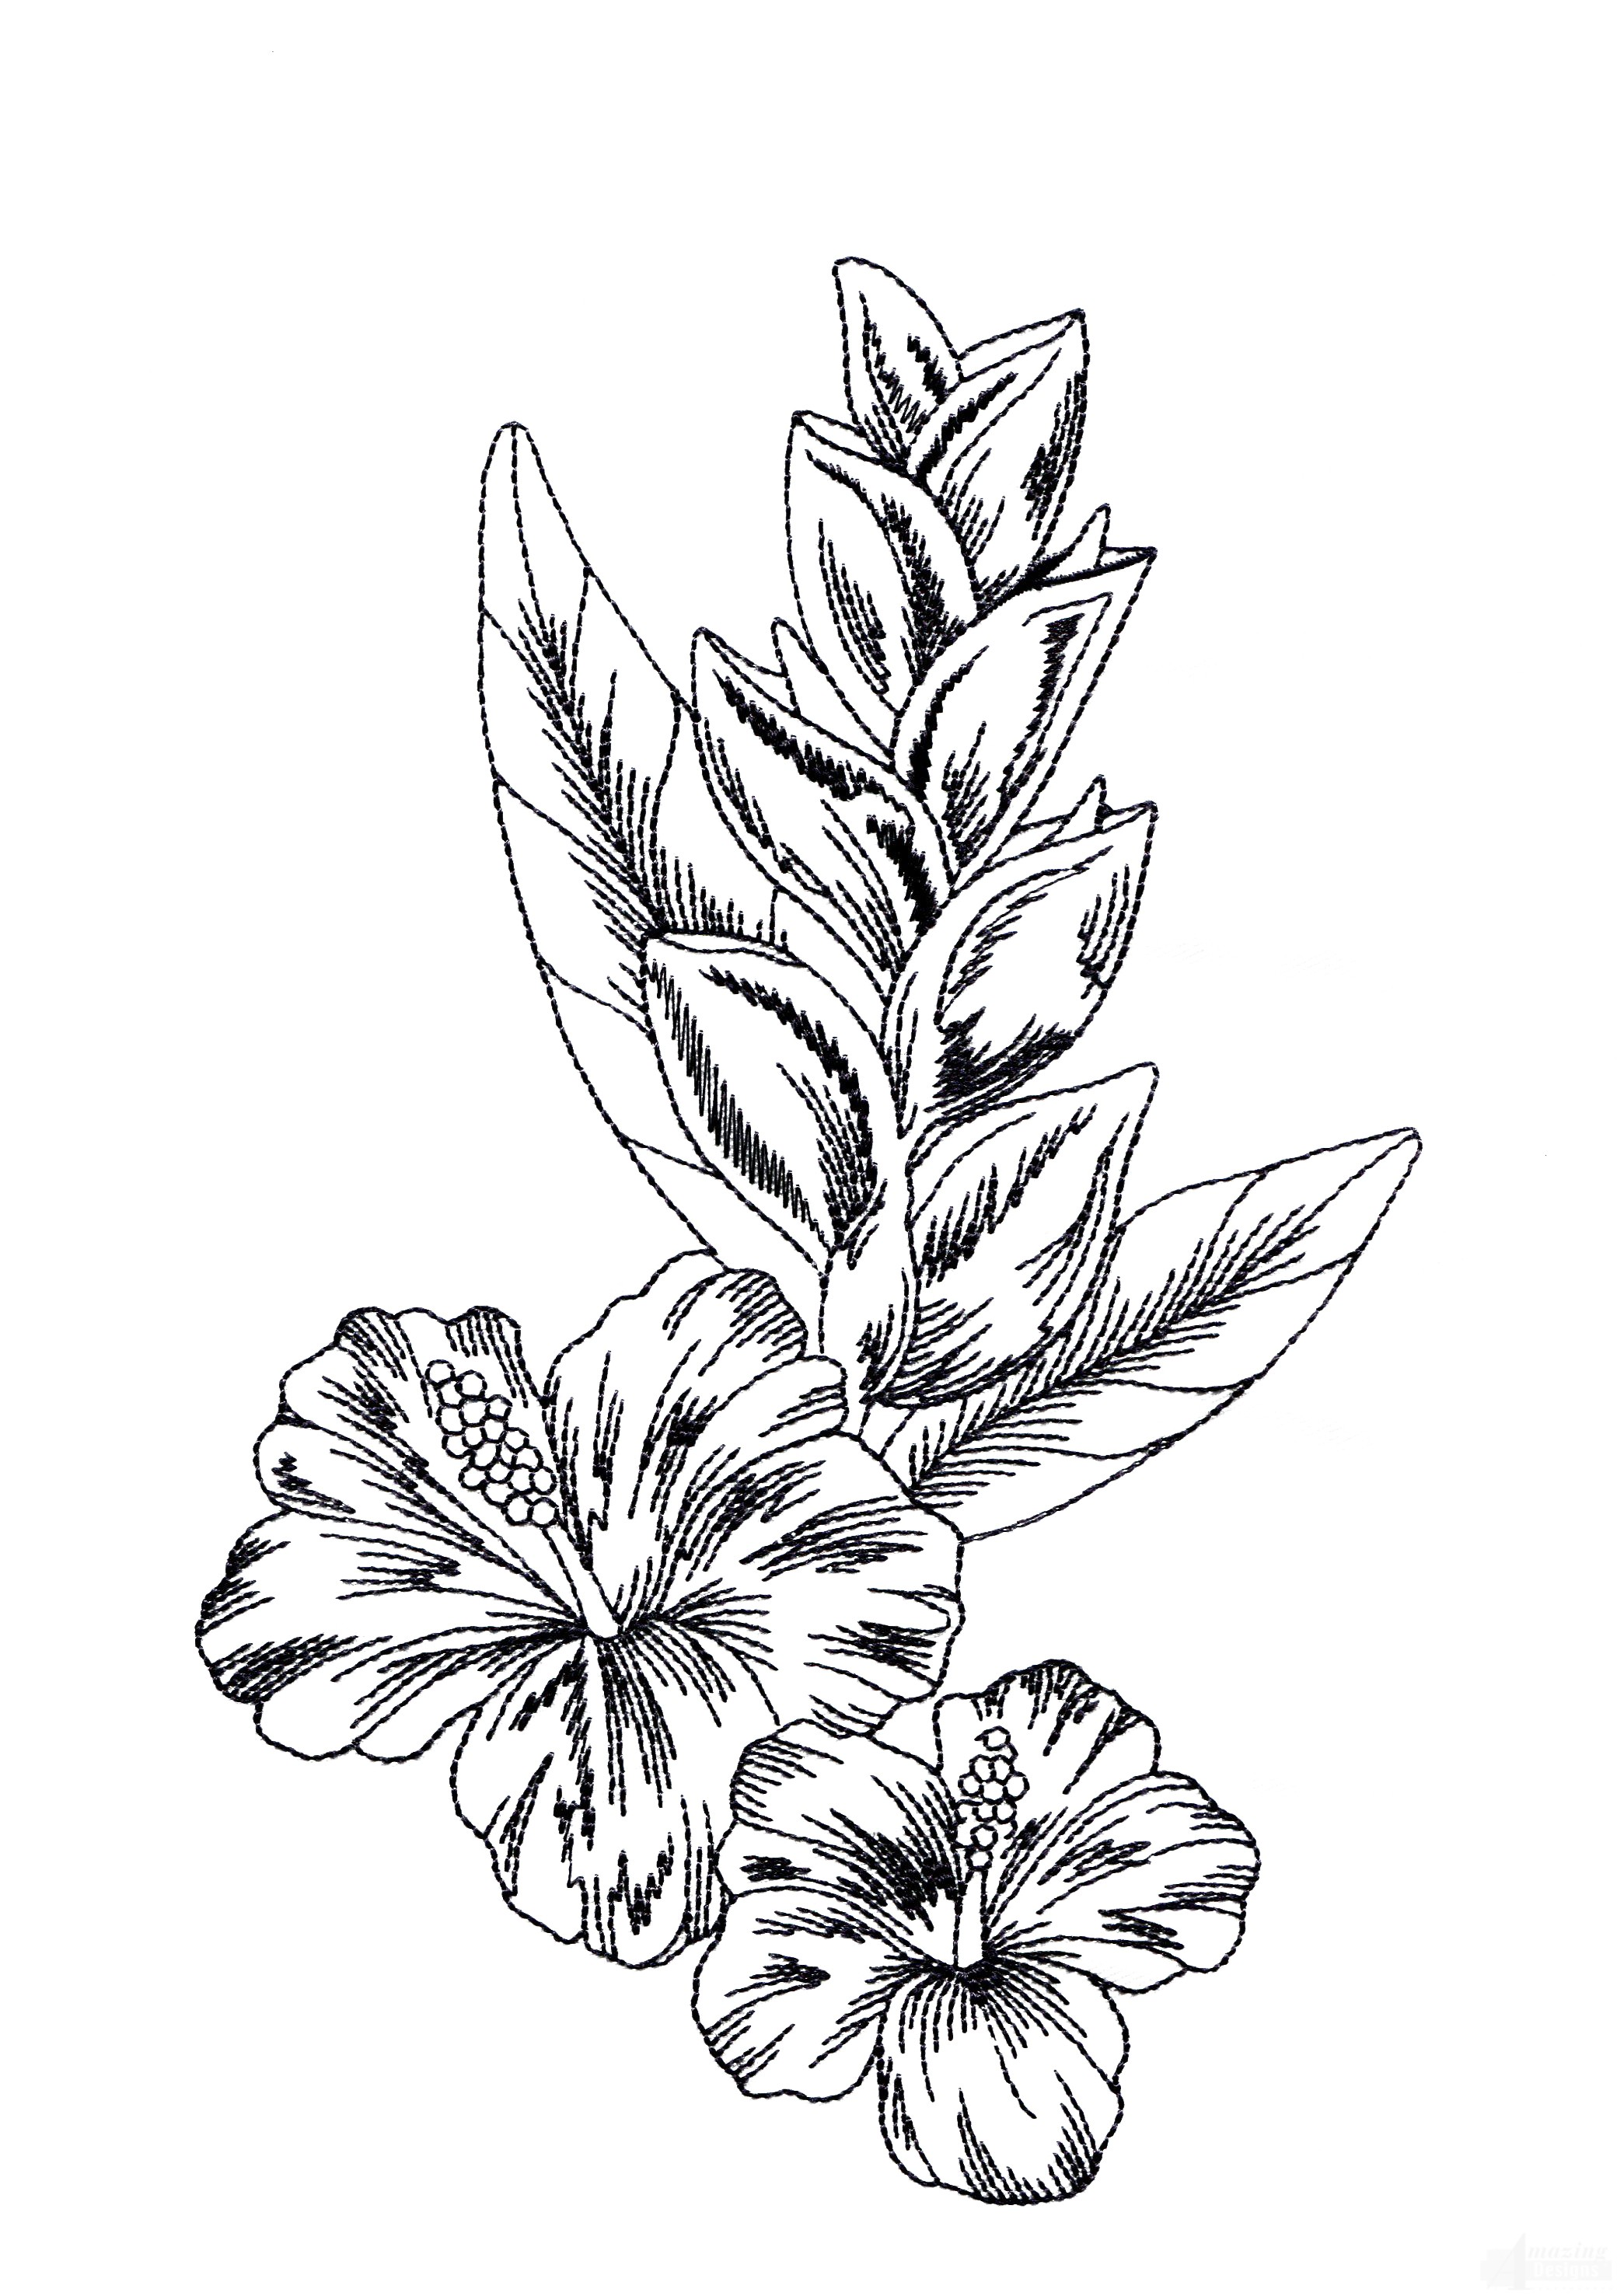 Line Drawing Floral : Floral line drawings clipart best